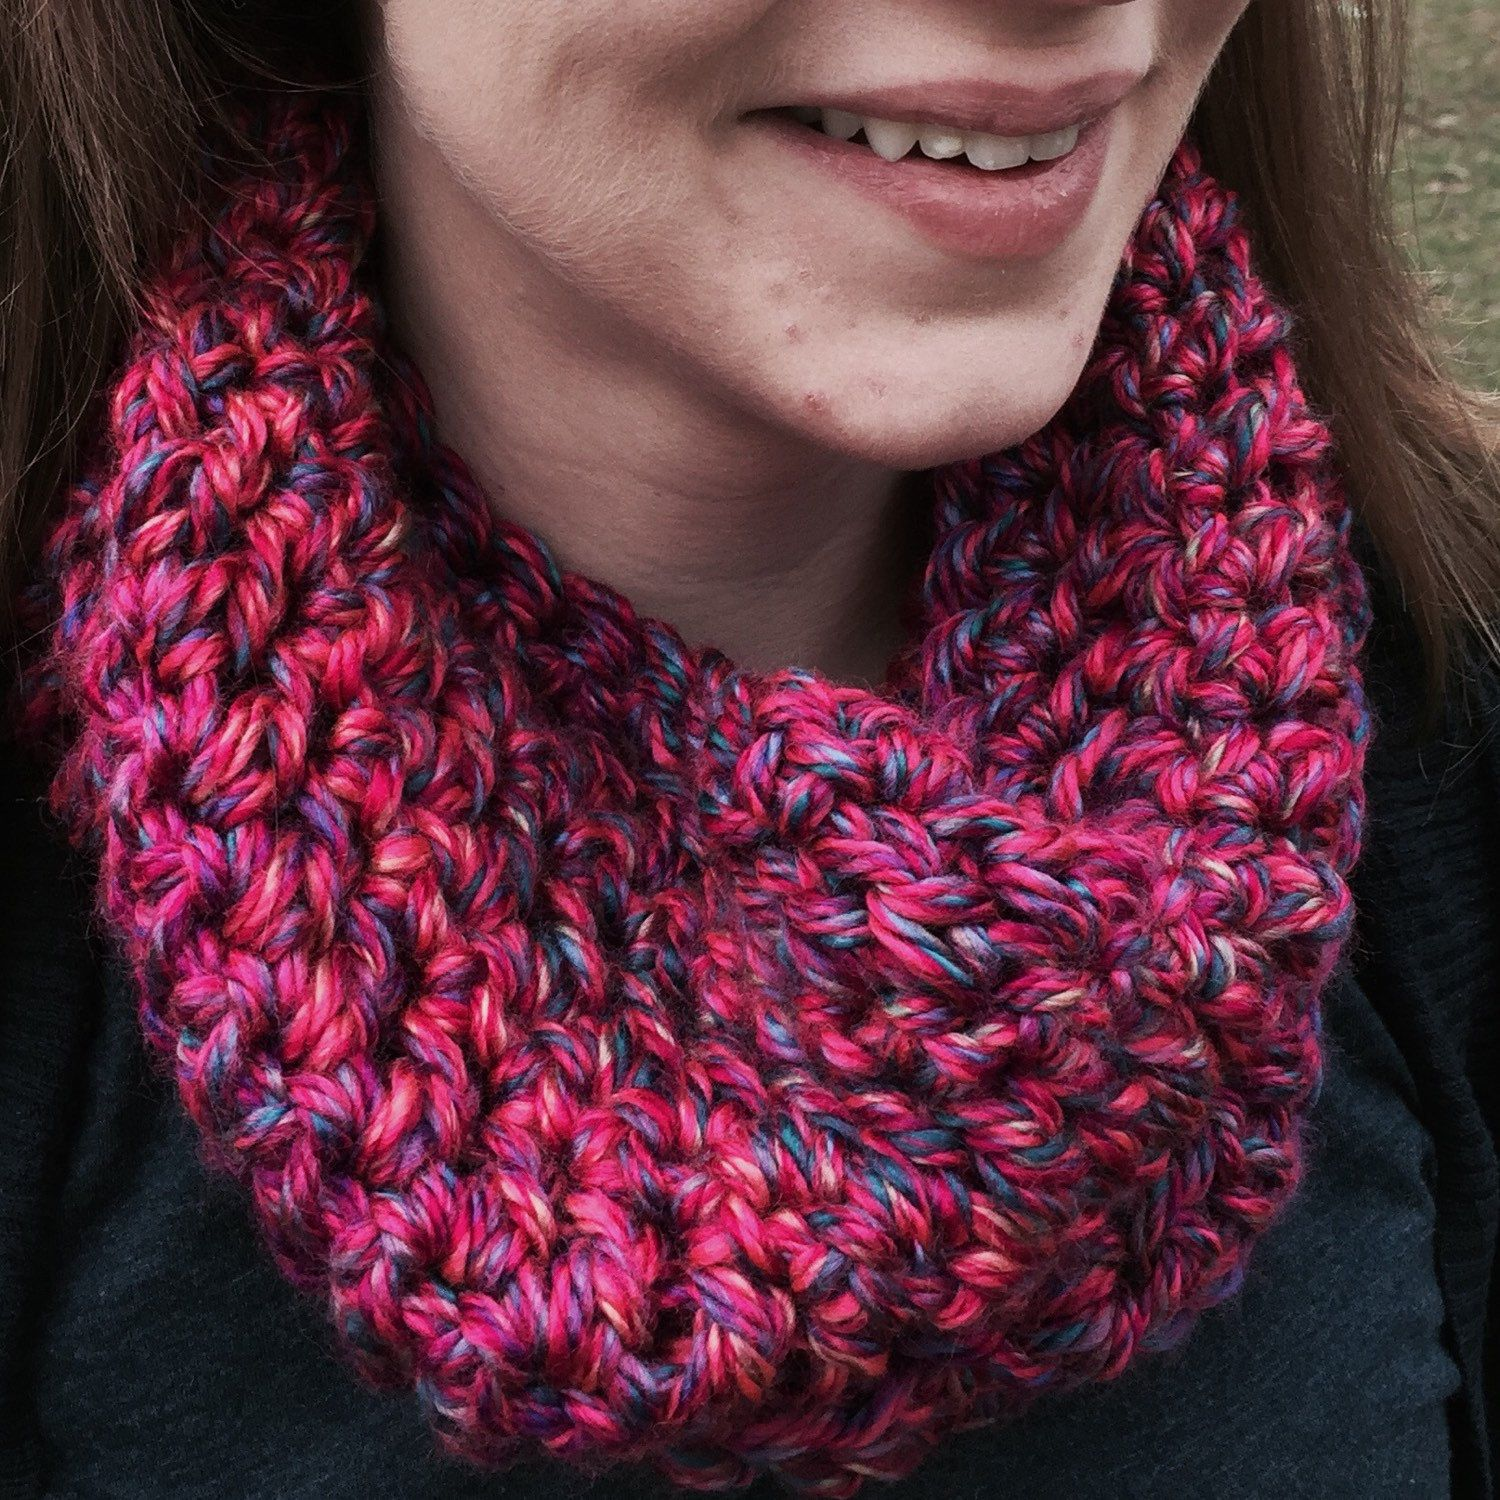 It might not feel like winter yet, but we still have February and March ahead of us. Don't get caught without stylish options to keep you warm. New in the shop are two super cozy cowl scarves. Not your color? Let me know, this yarn comes in many colors.